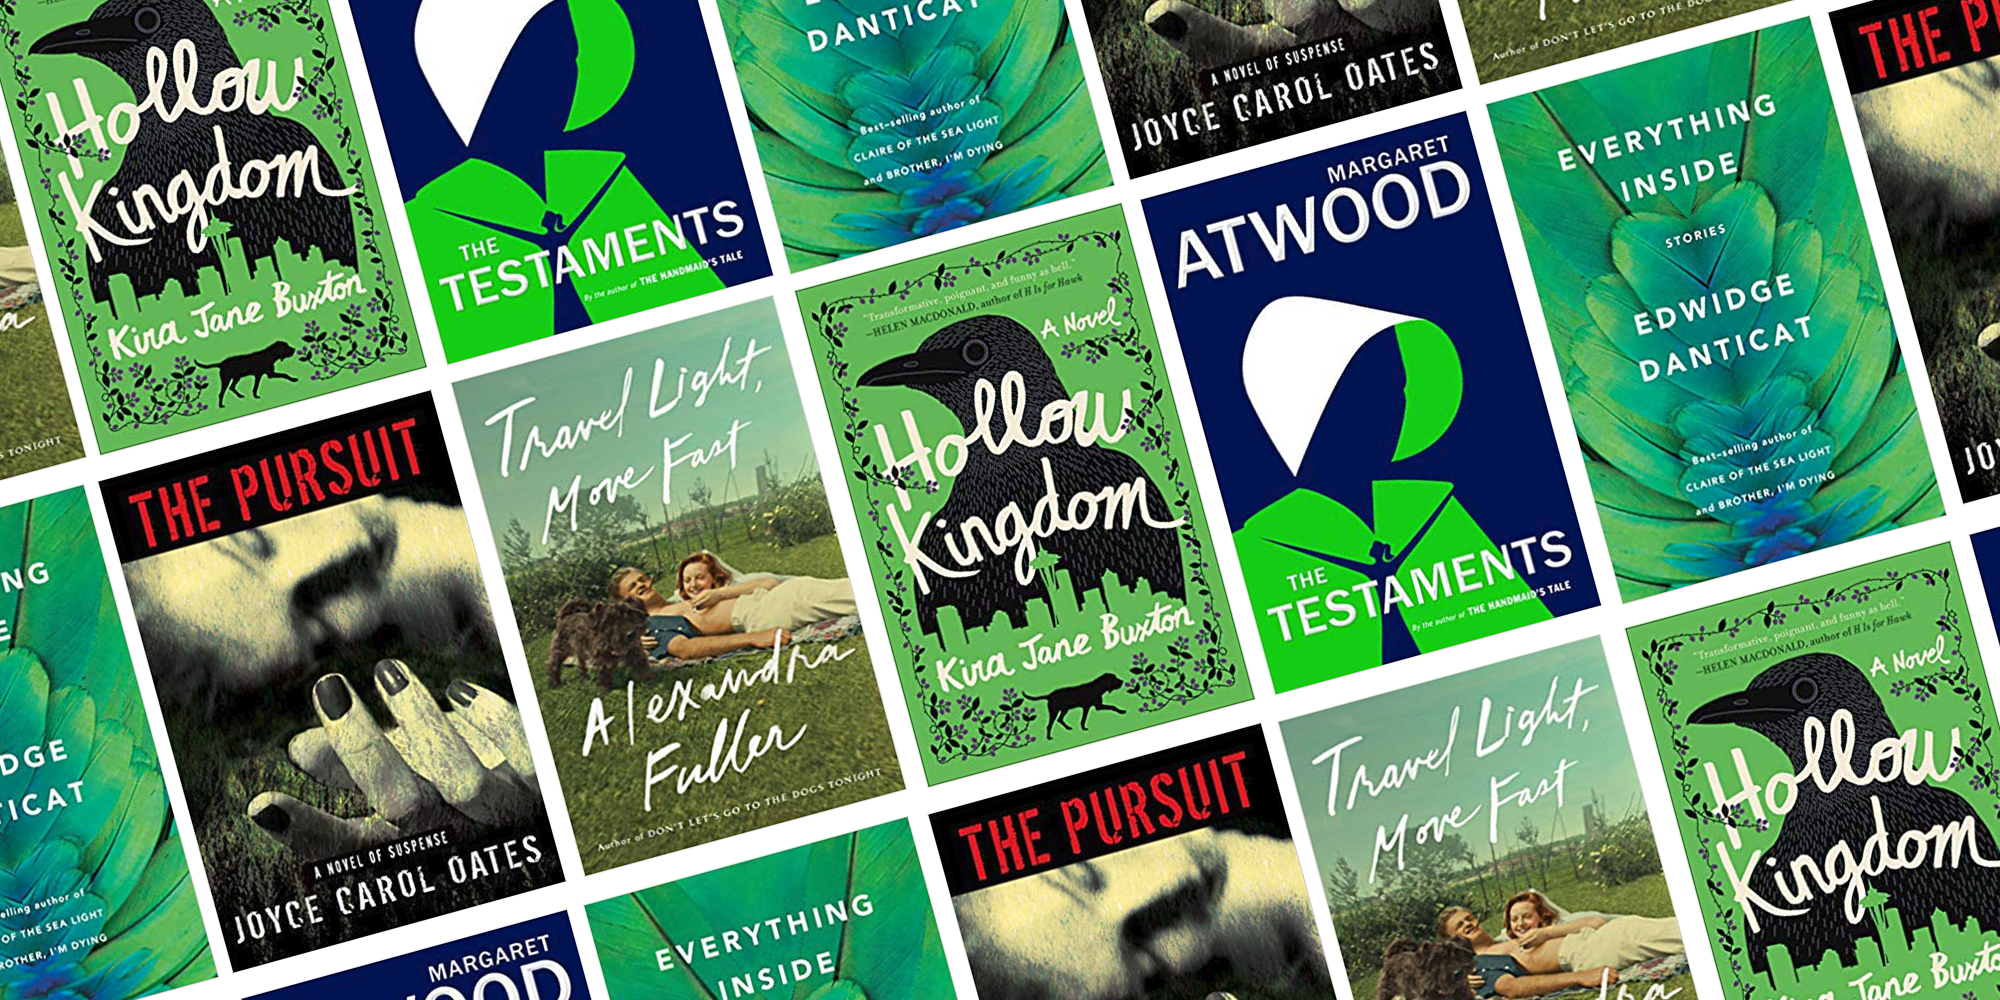 20 Best Fall Books - Top Fiction and Nonfiction for Back-to